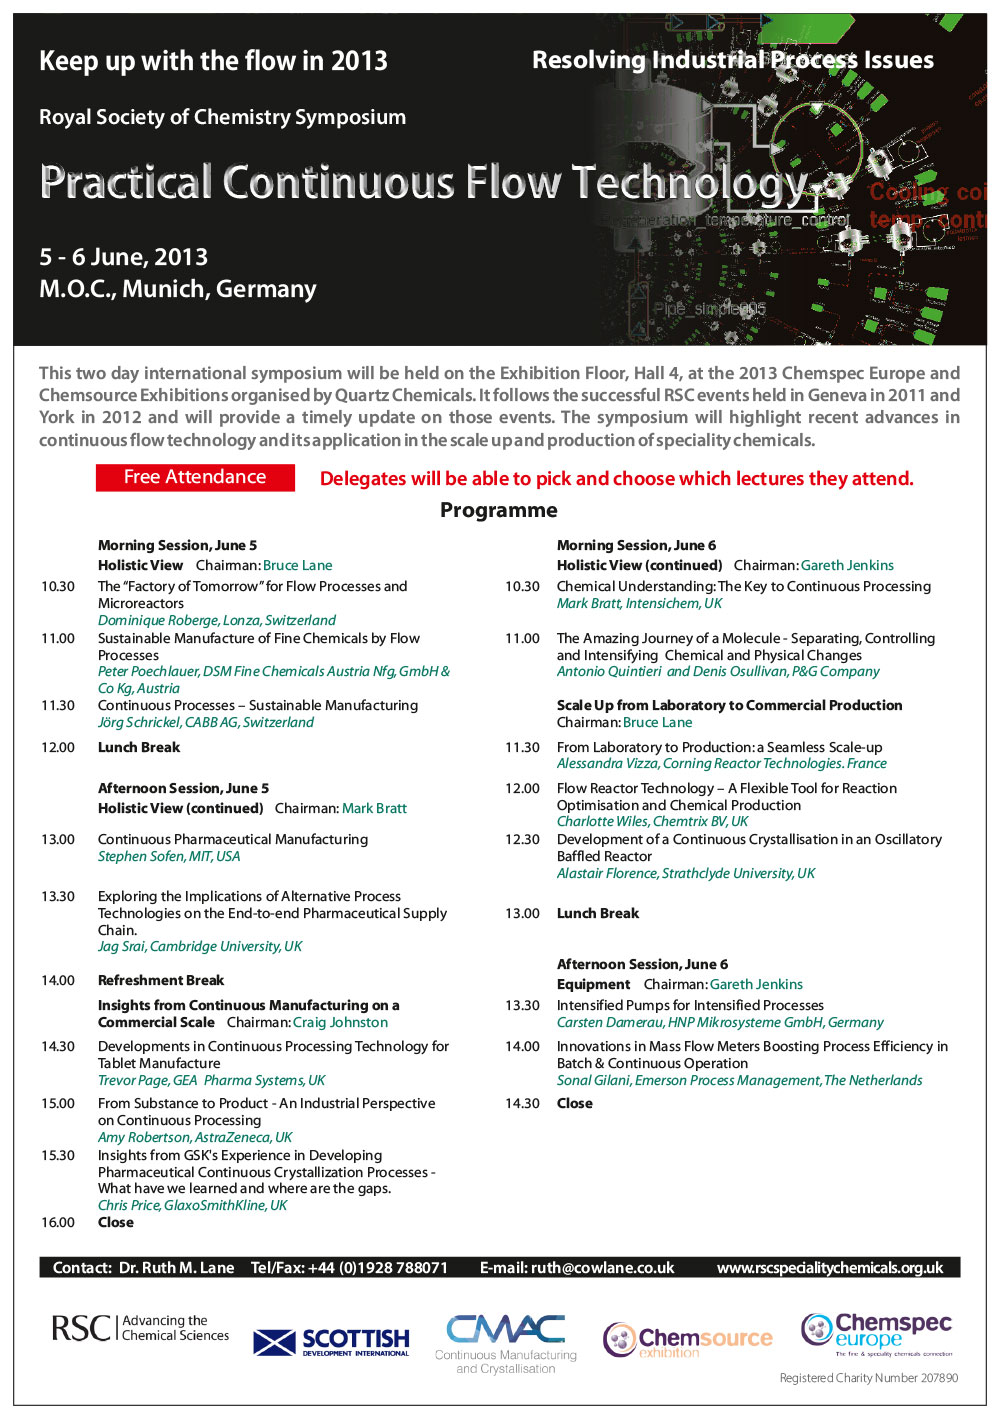 Royal Society of Chemistry Symposium 2013: Practical Continuous Flow